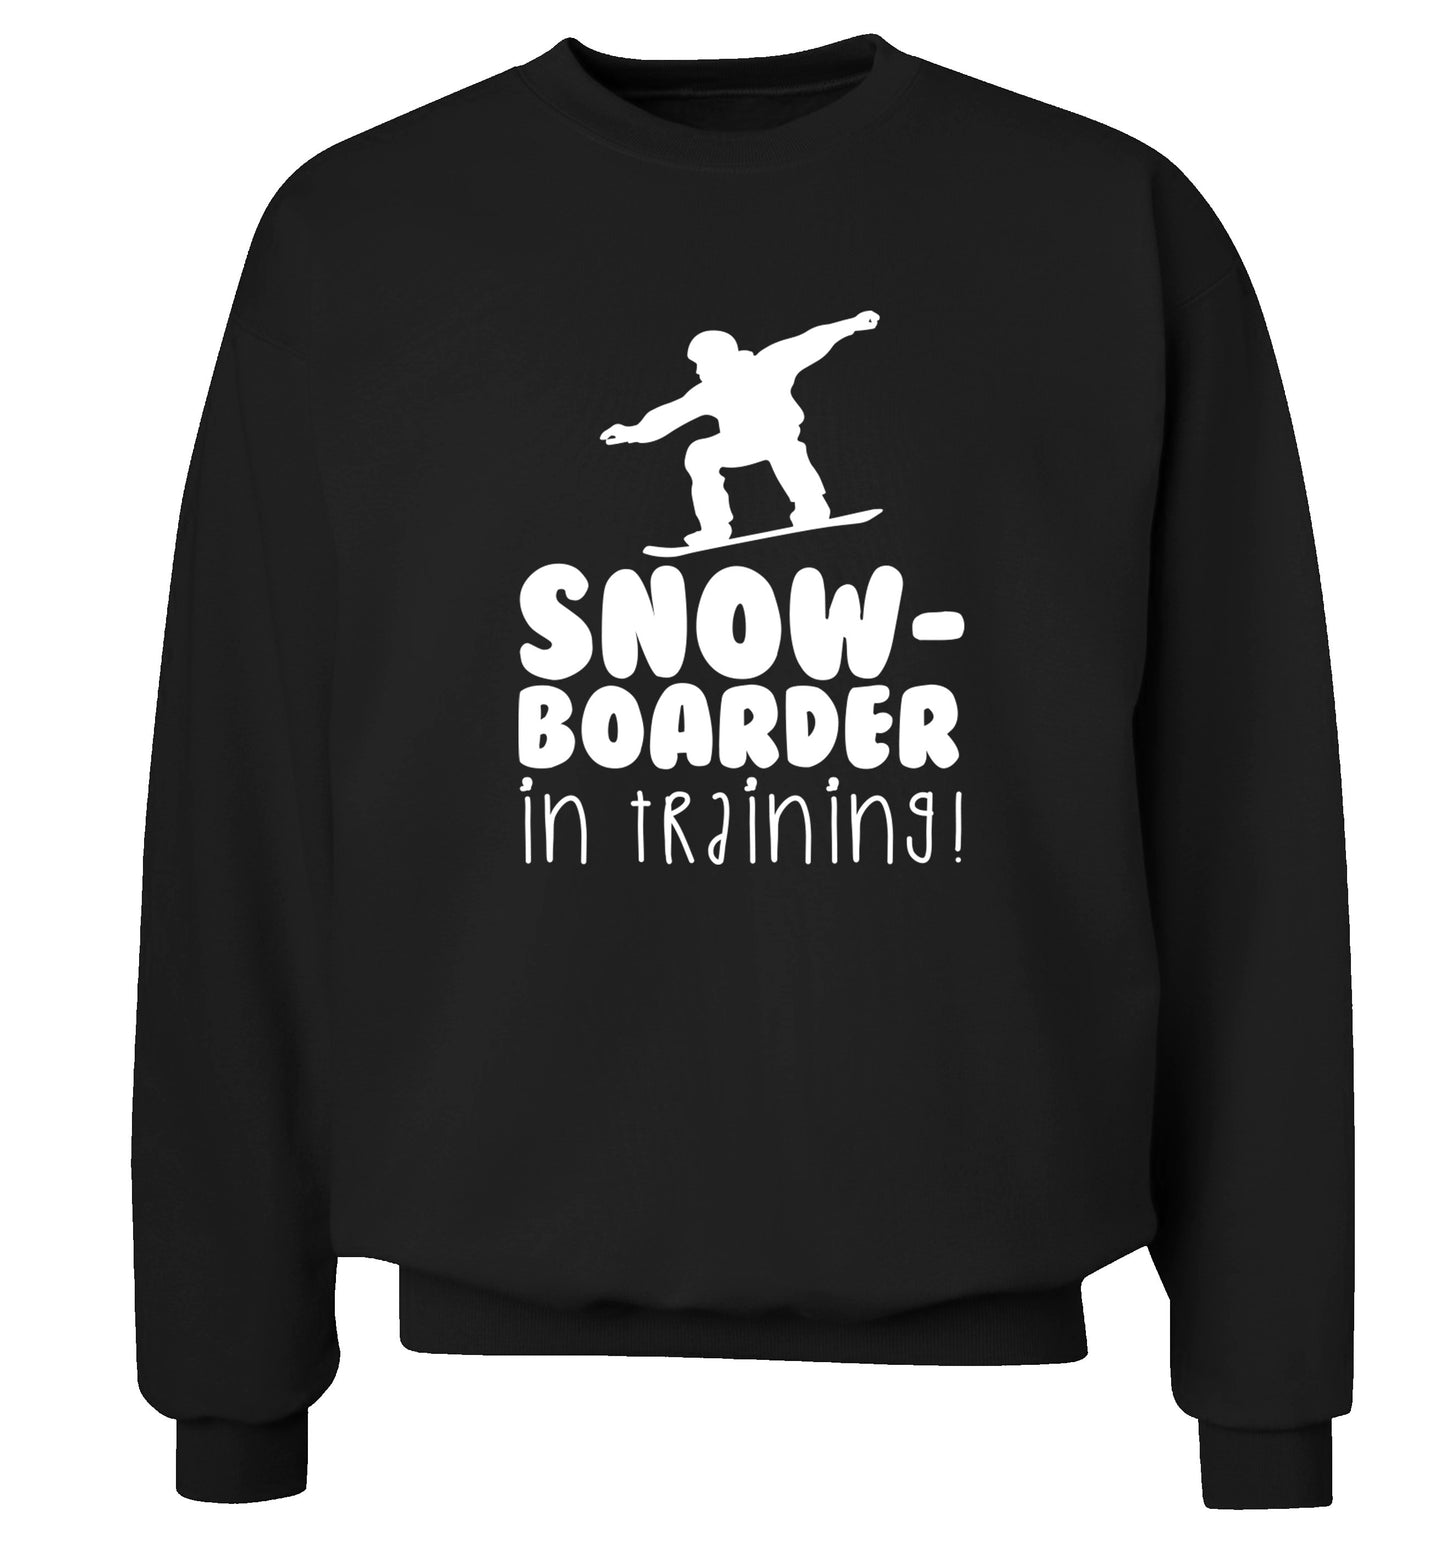 Snowboarder in training Adult's unisex black Sweater 2XL